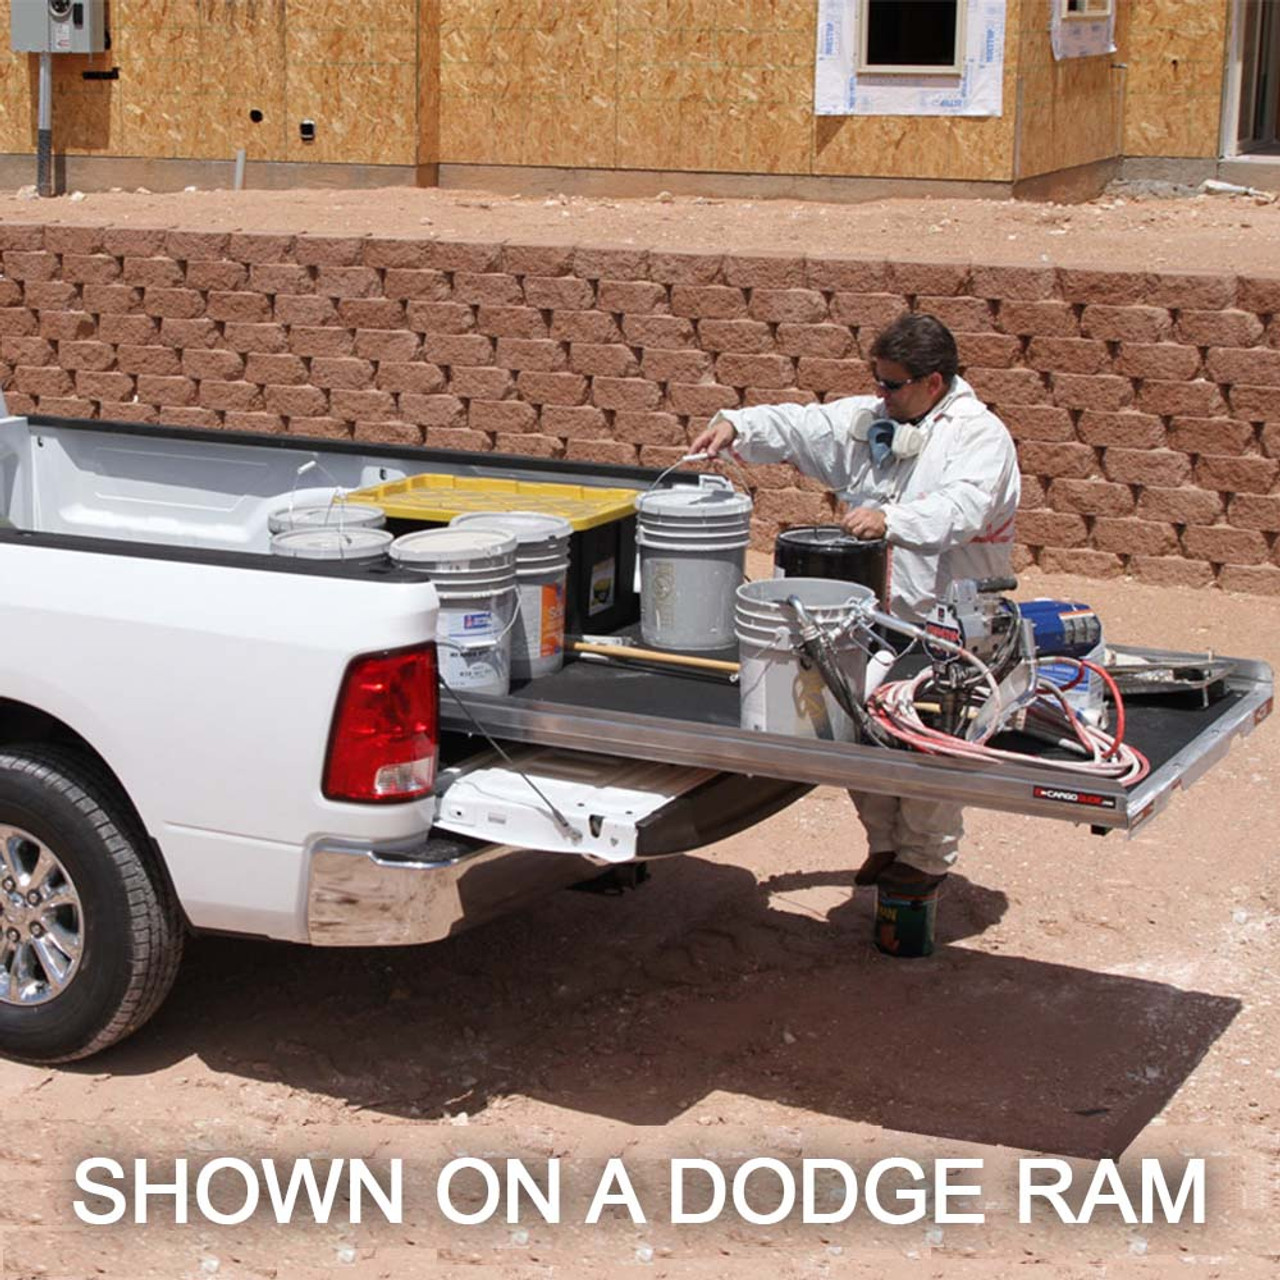 "Cargo-Glide CG1200 Nissan Titan King Cab Steel Truck-Bed Slide and Extender, 1200 lb Capacity, 65-75% Extension, 4"" Side Rails, 3.875"" Deck Height, Includes Installation Kit"